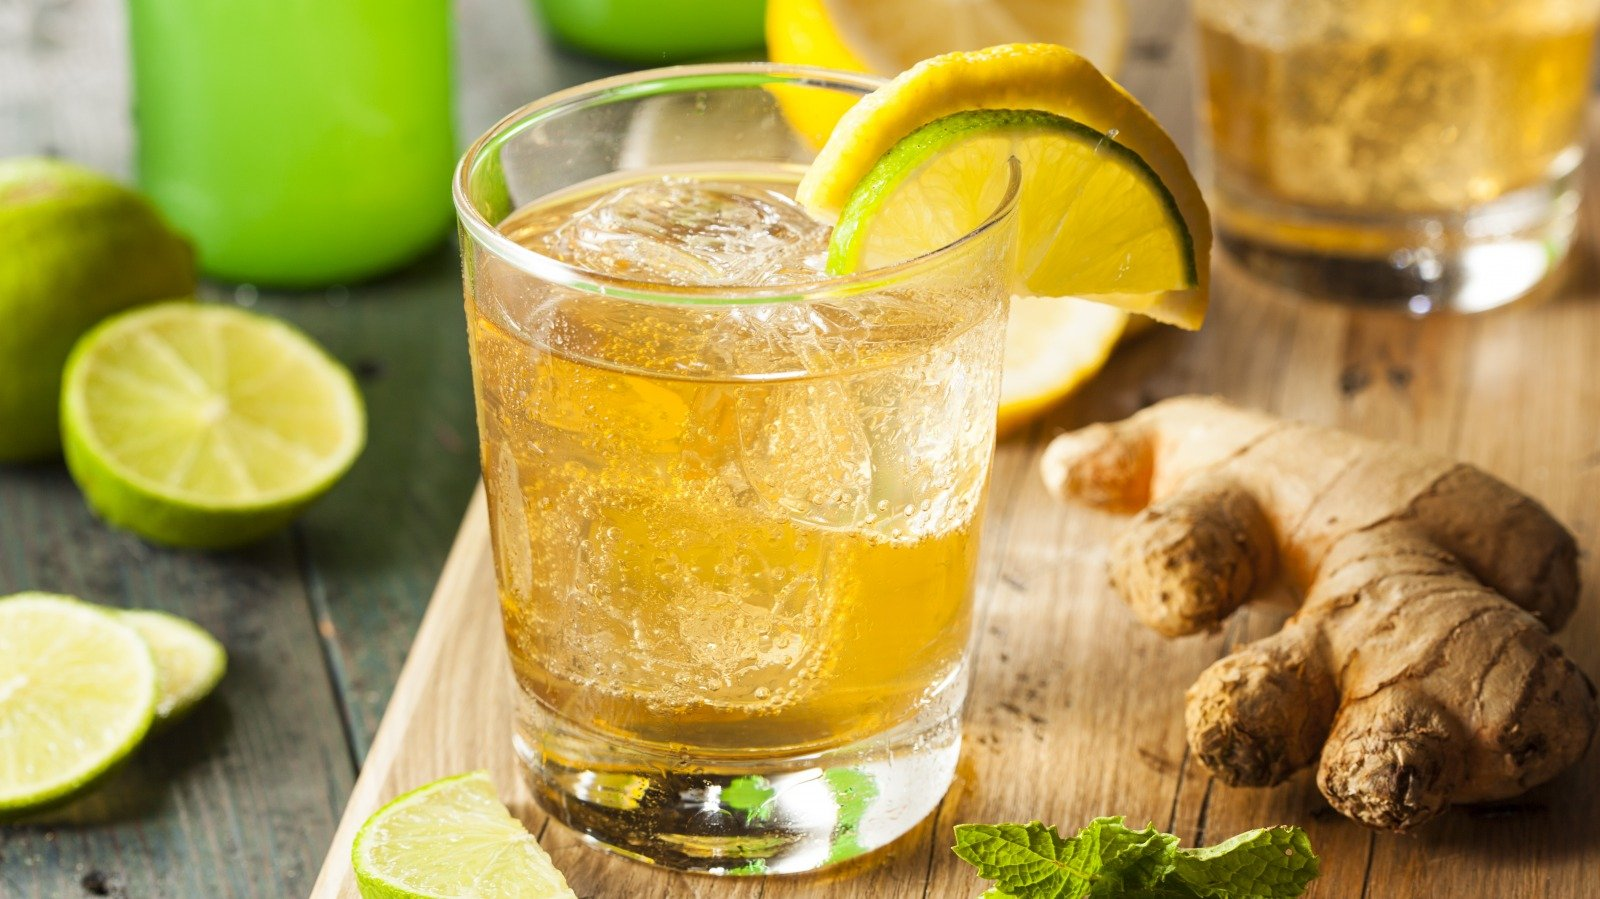 Fact Or Fiction: Ginger Ale Will Calm An Upset Stomach